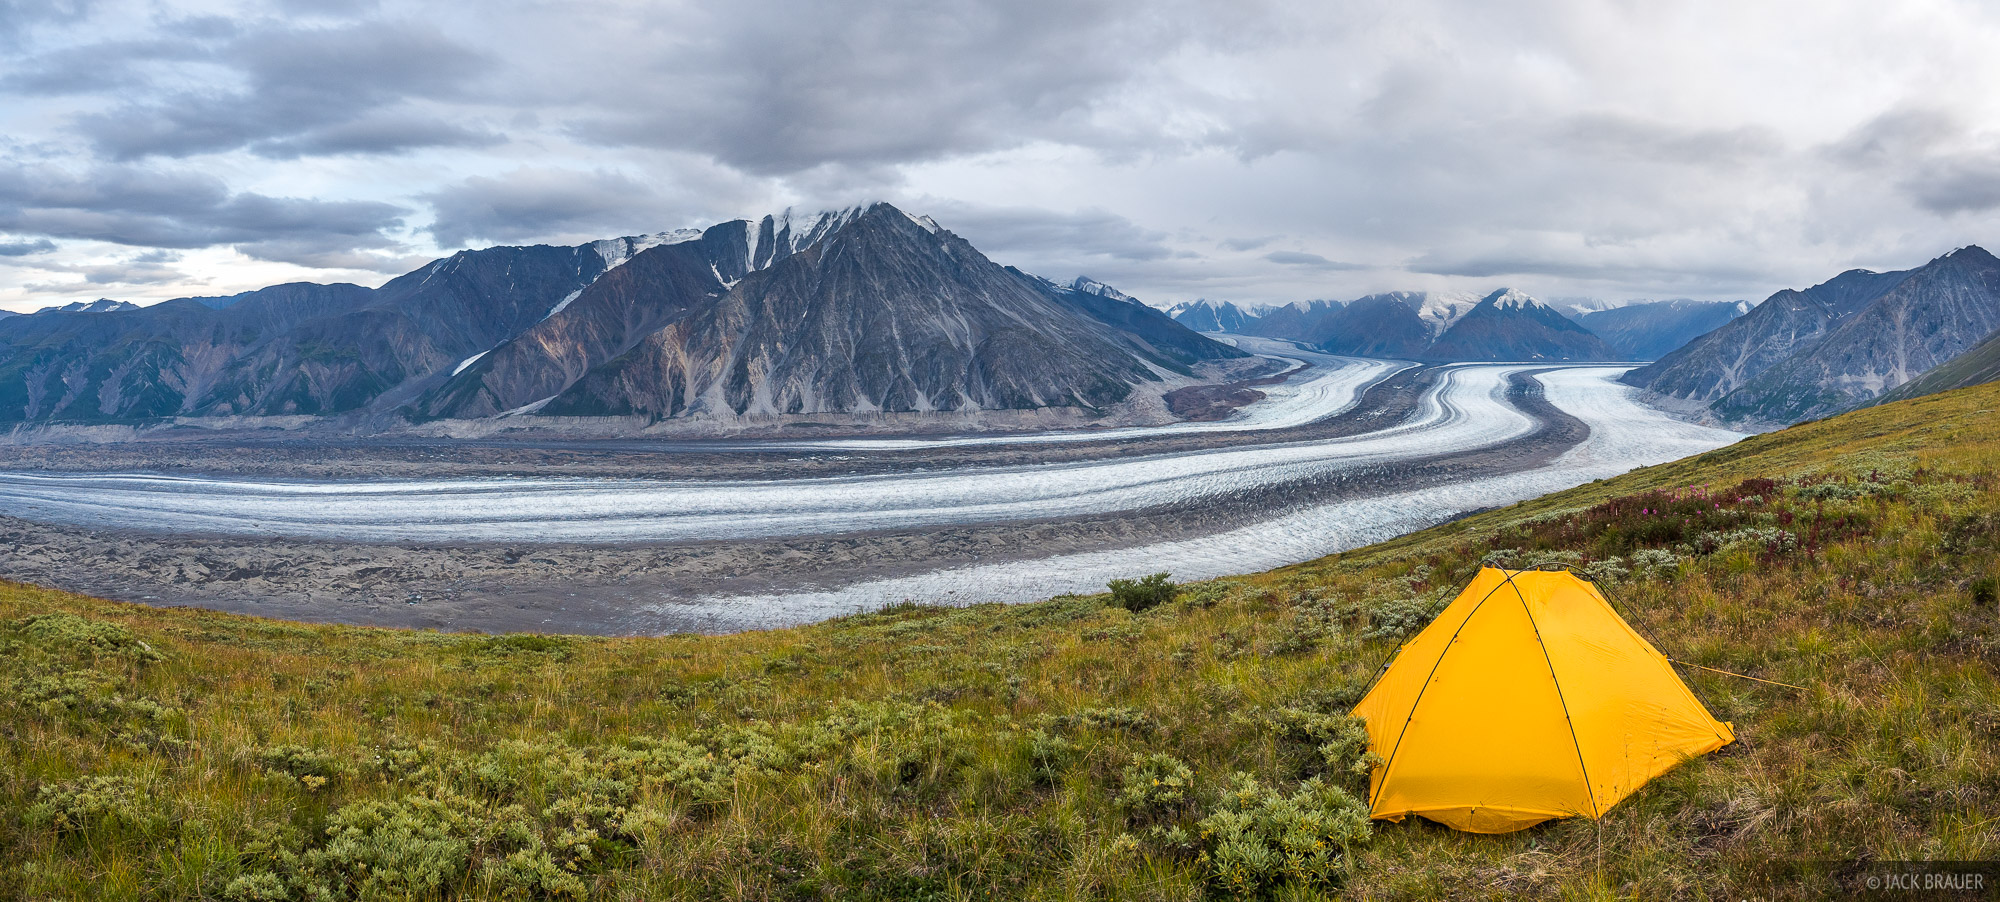 Canada, Kaskawulsh Glacier, Kluane National Park, Slims River, Yukon, tent, photo